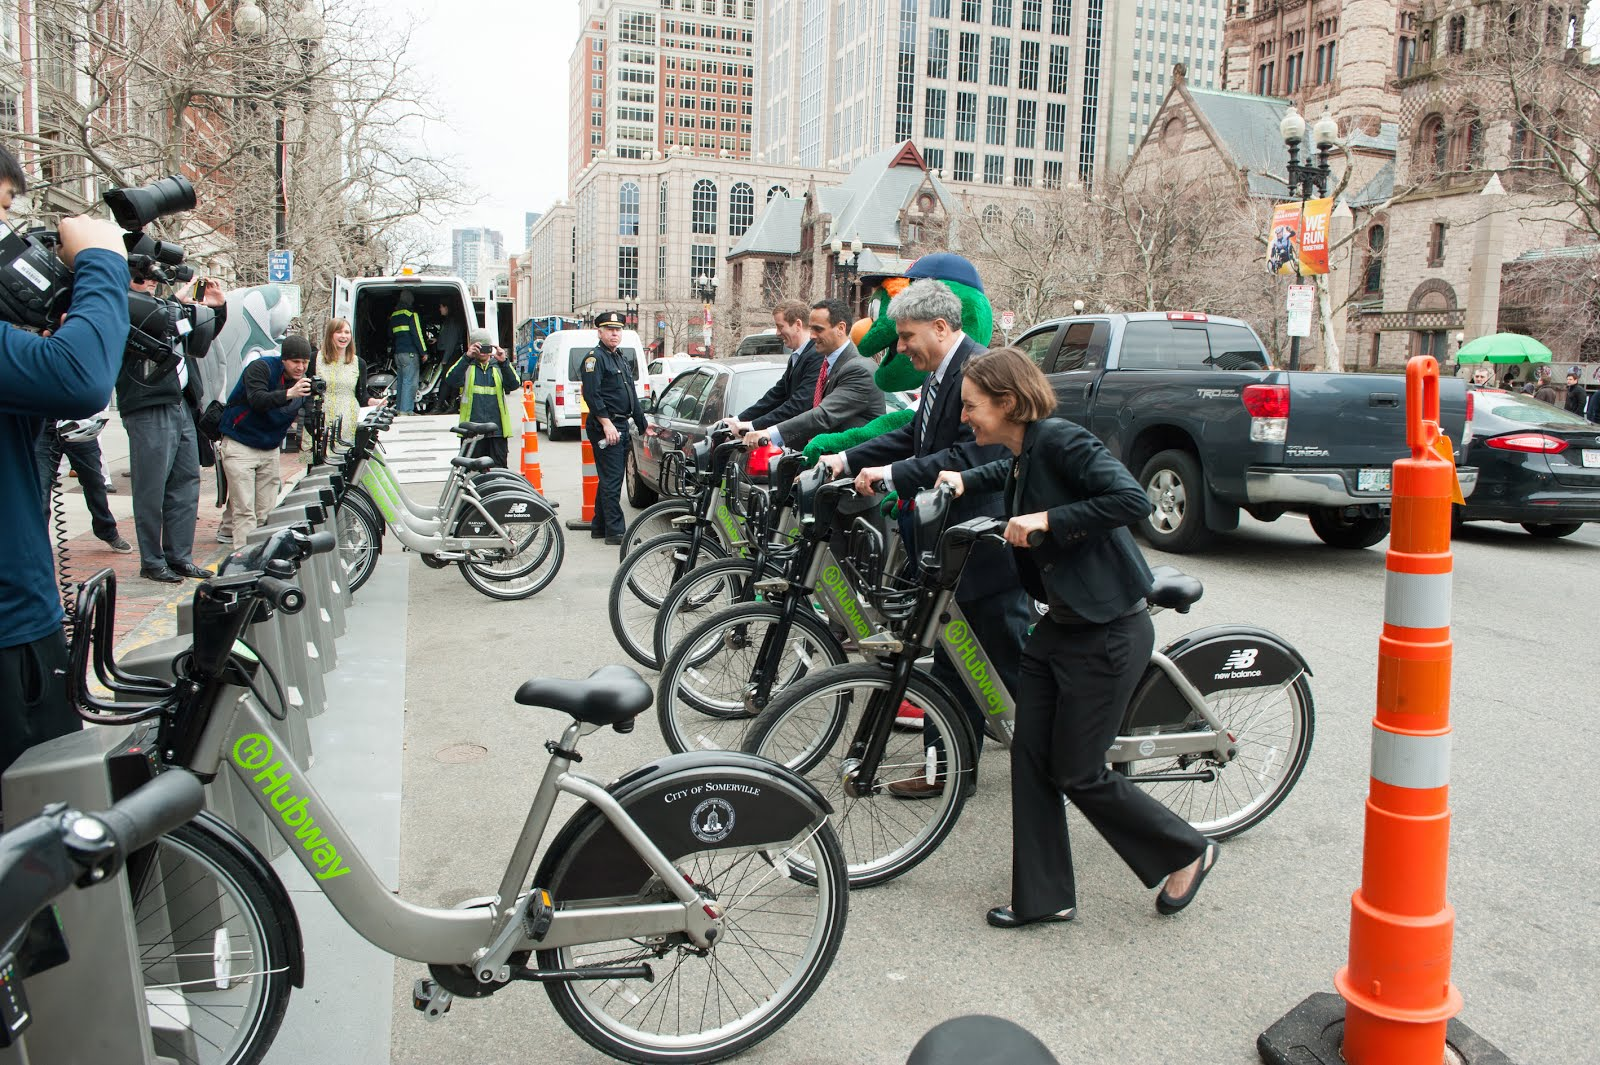 Hubway launch event with dignitaries on bikes.